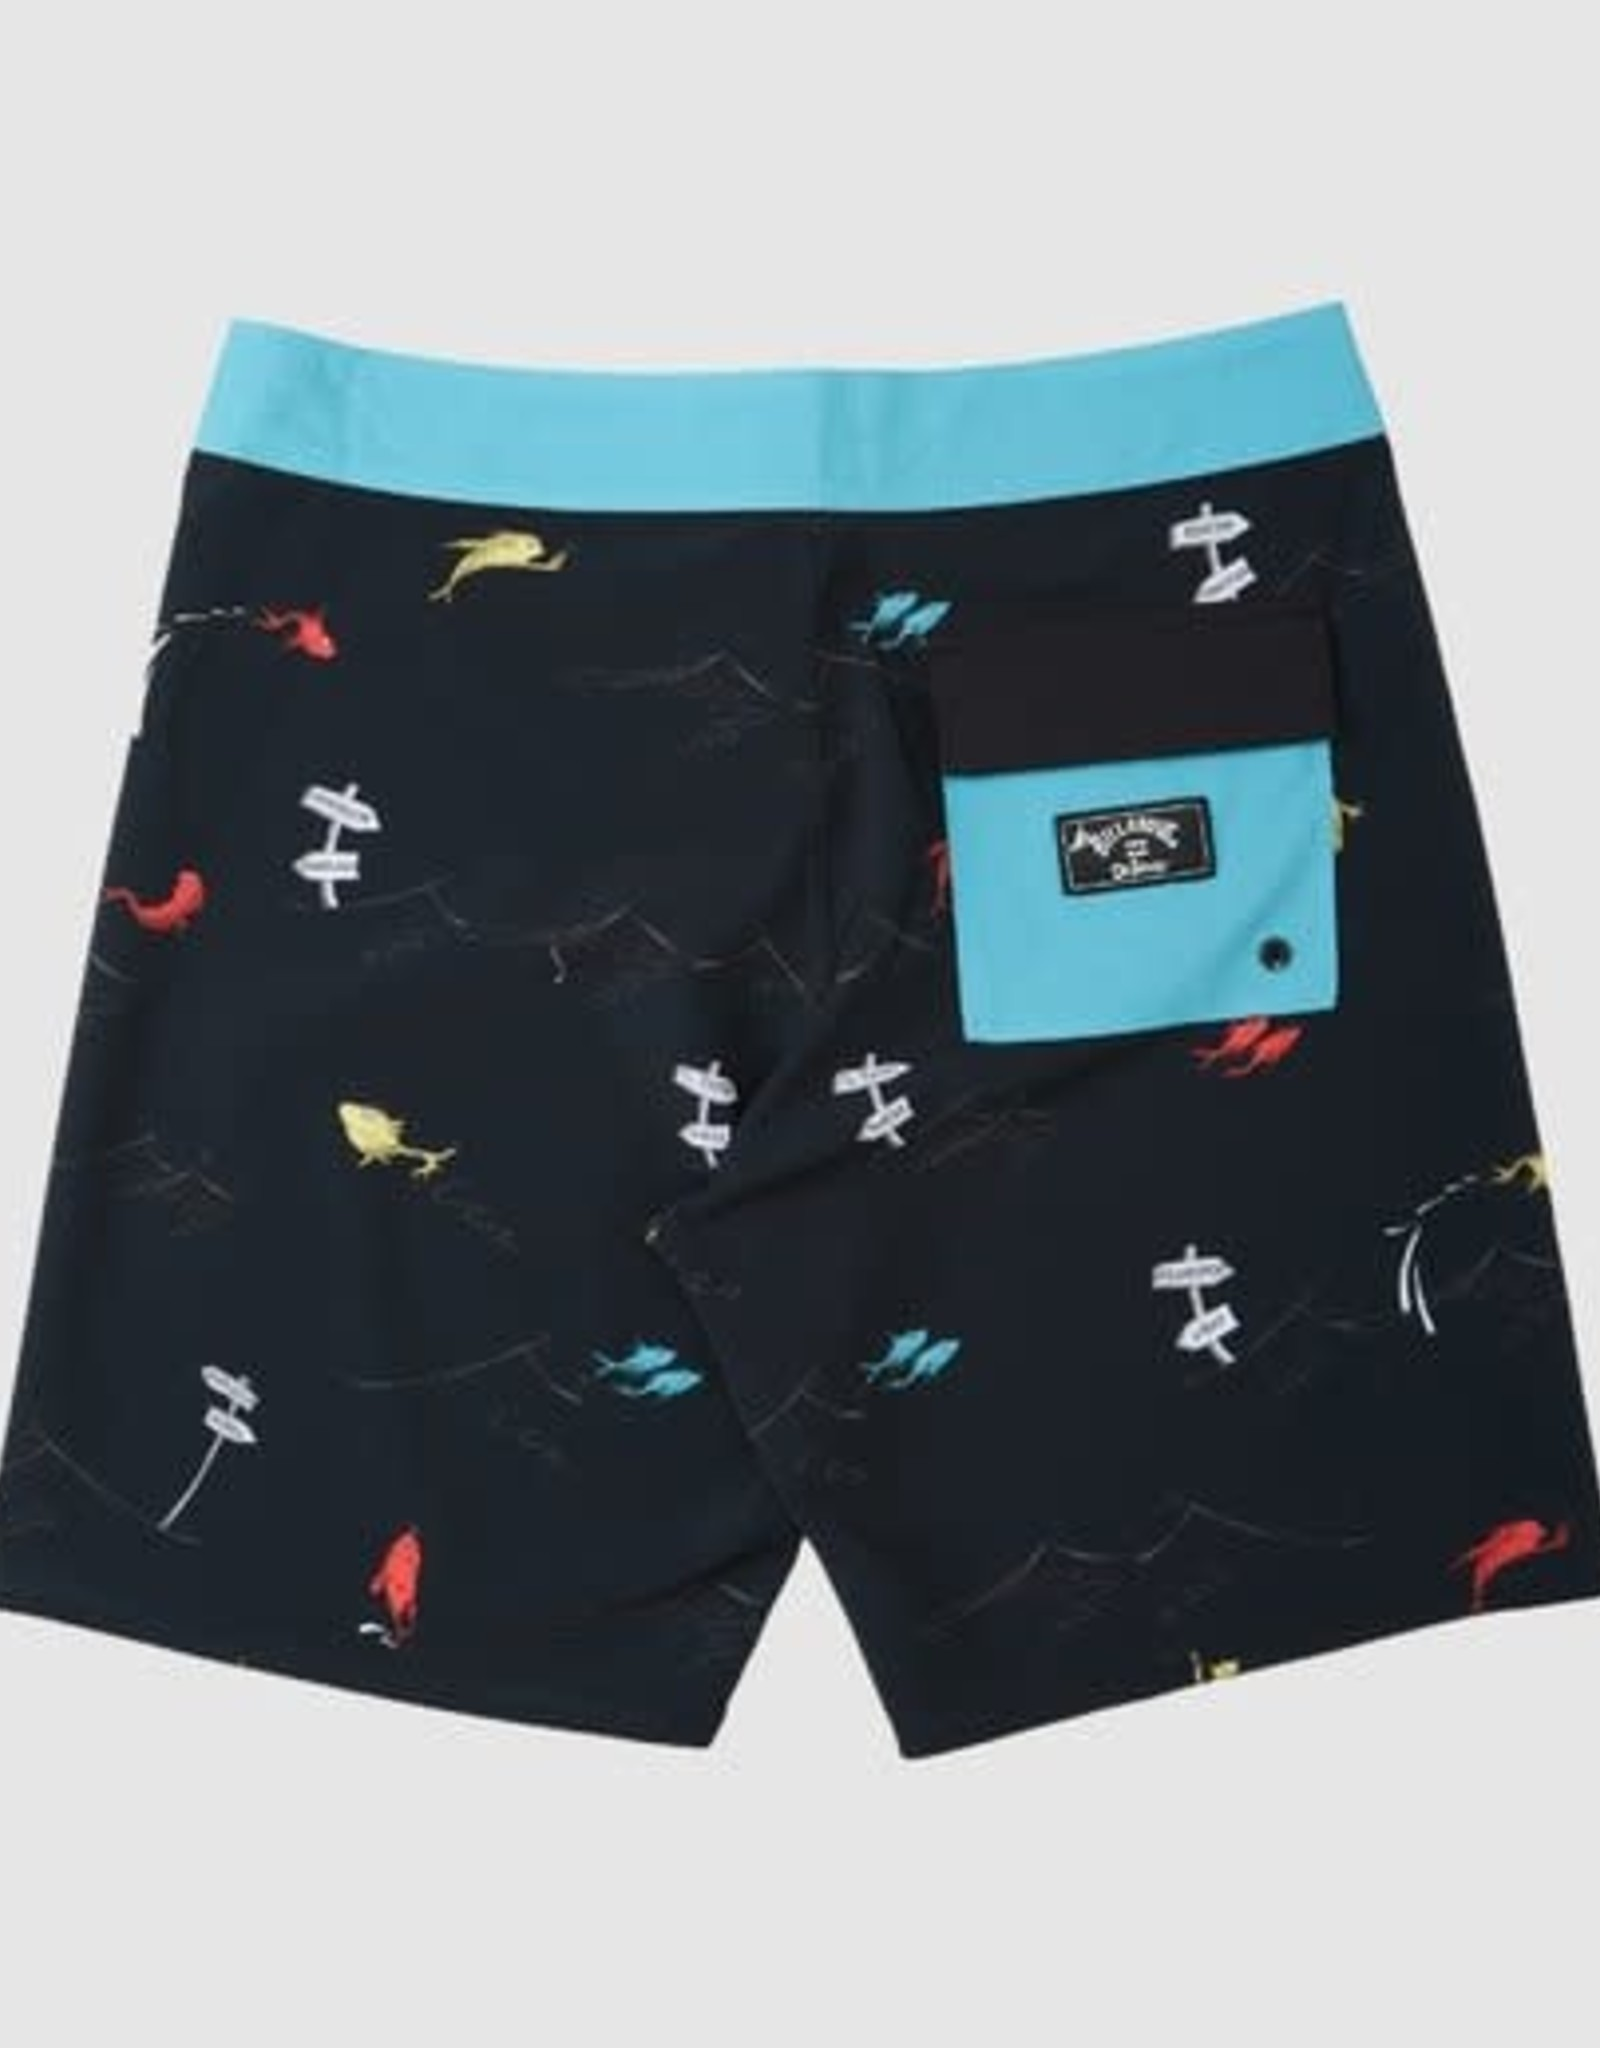 BILLABONG Grom Boys Dr. Seuss One Fish Two Fish Boardshorts - Size 2